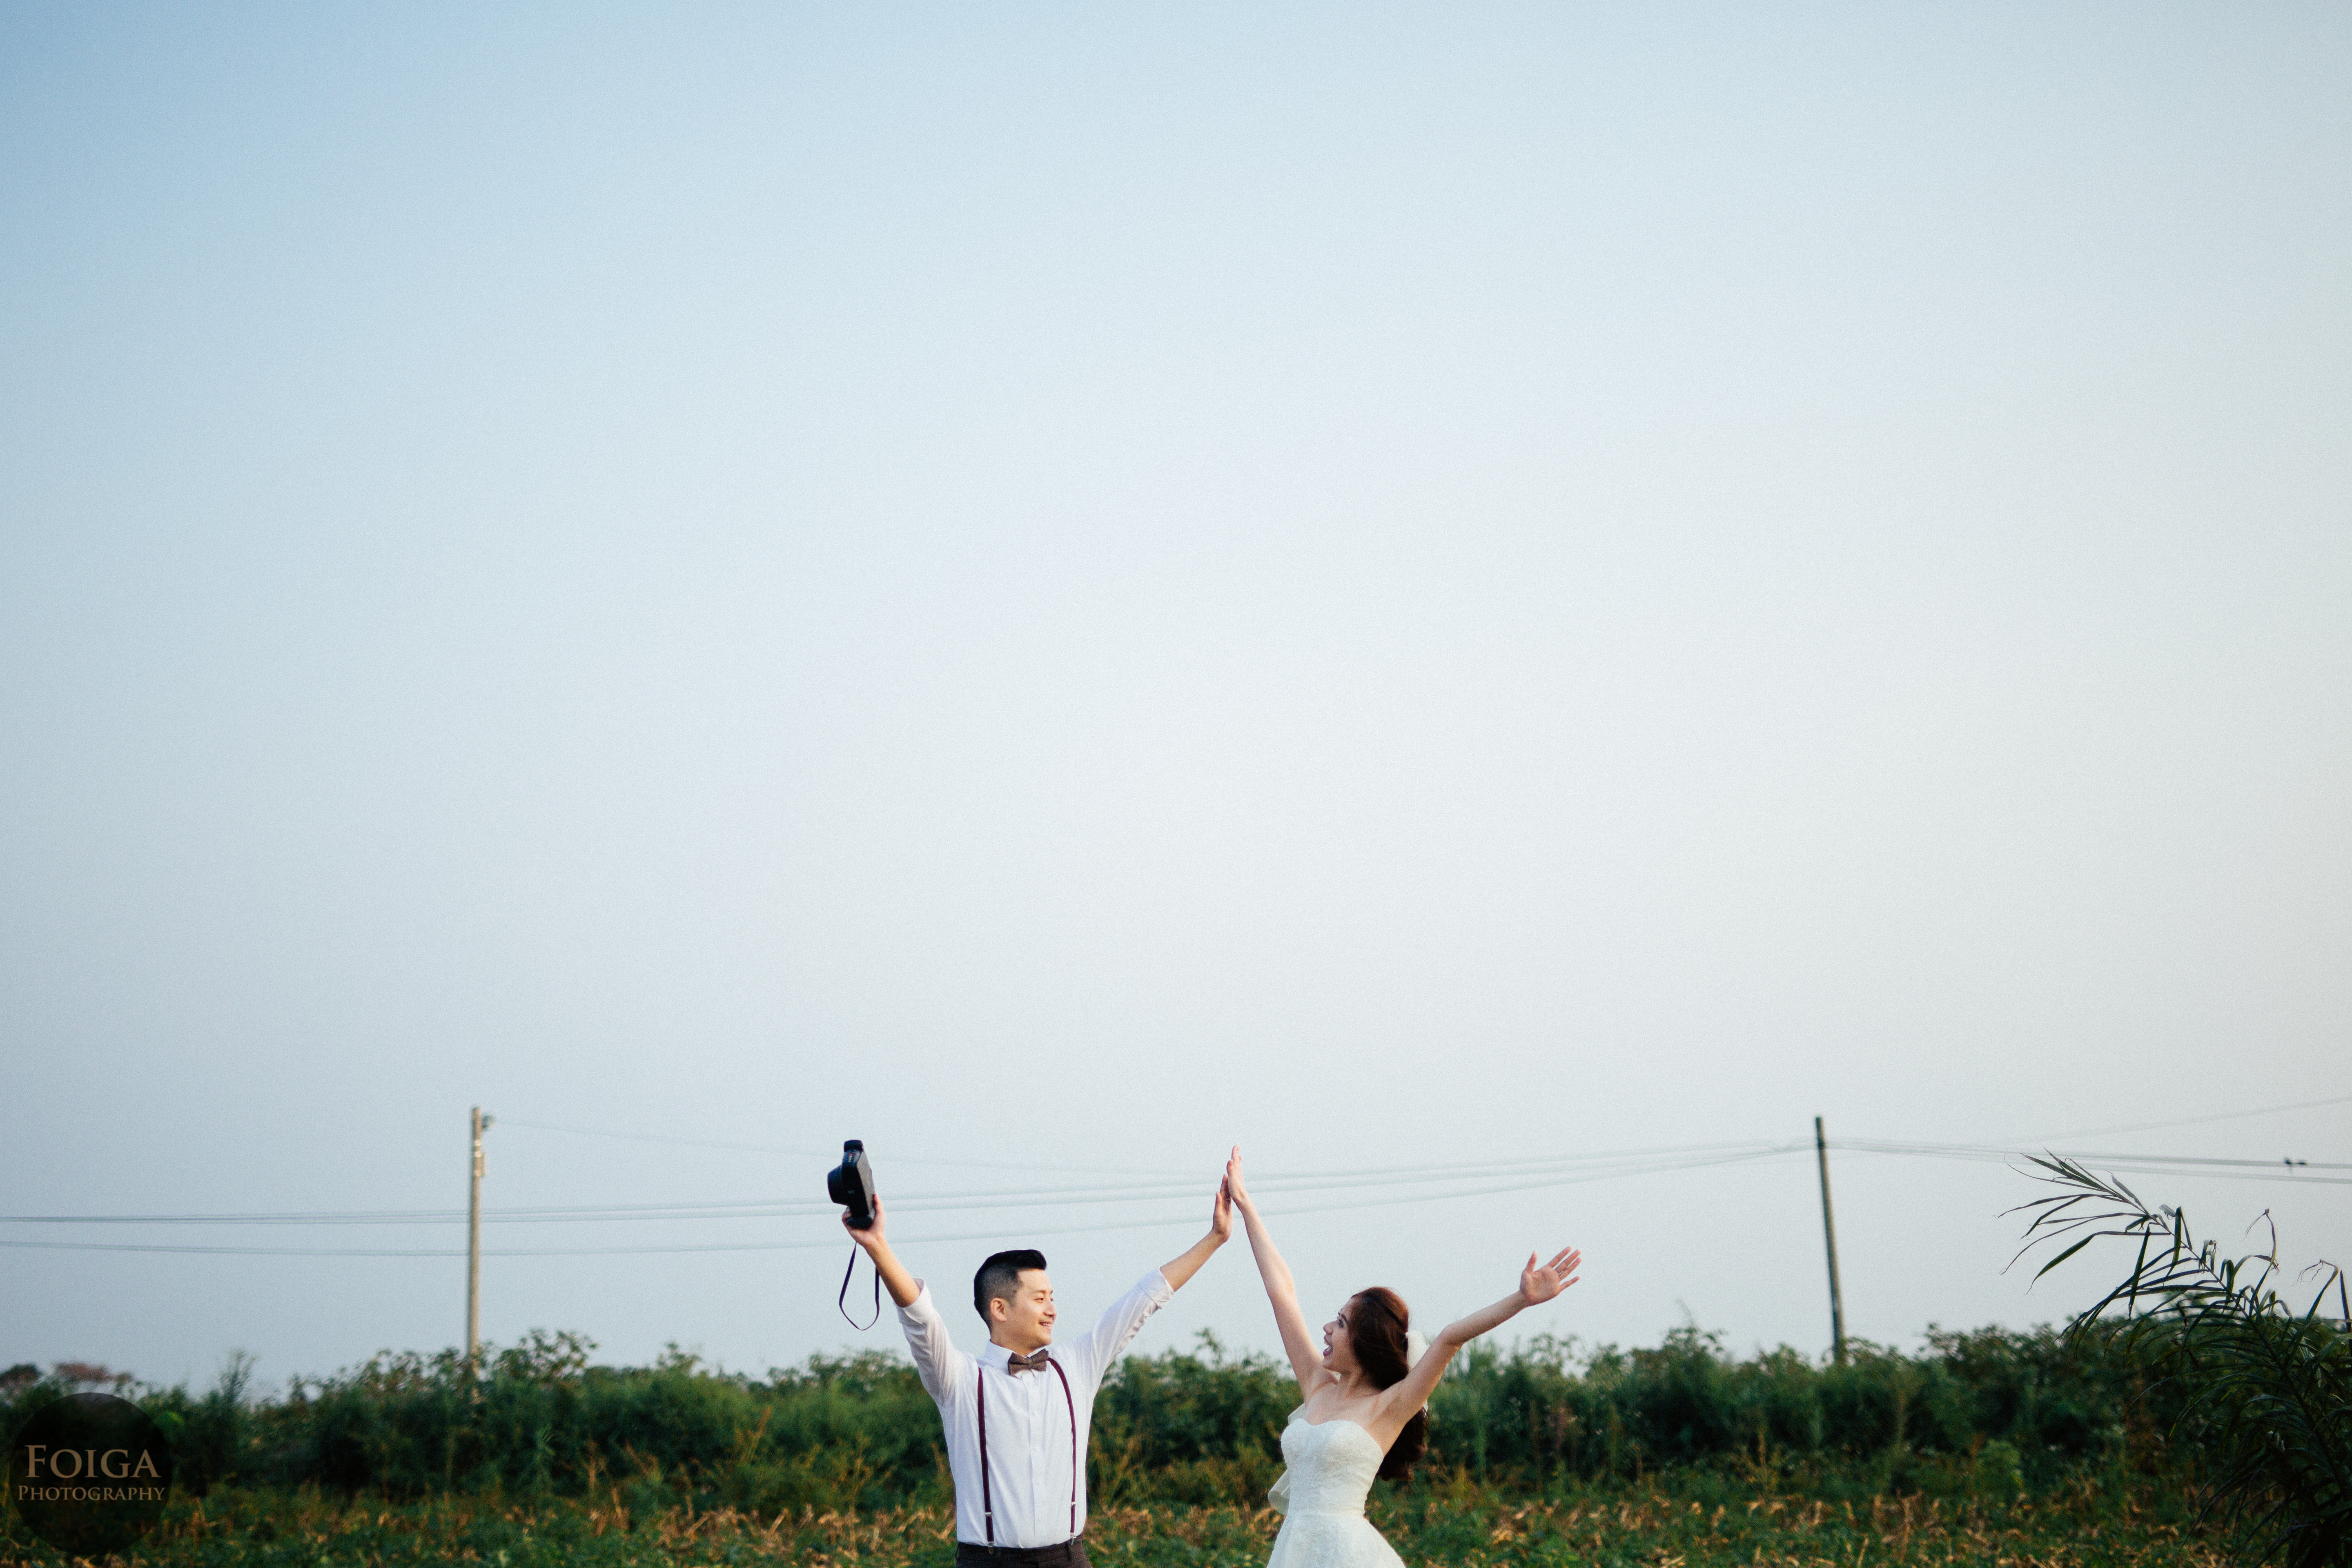 JasonandAmy_PreWedding-539